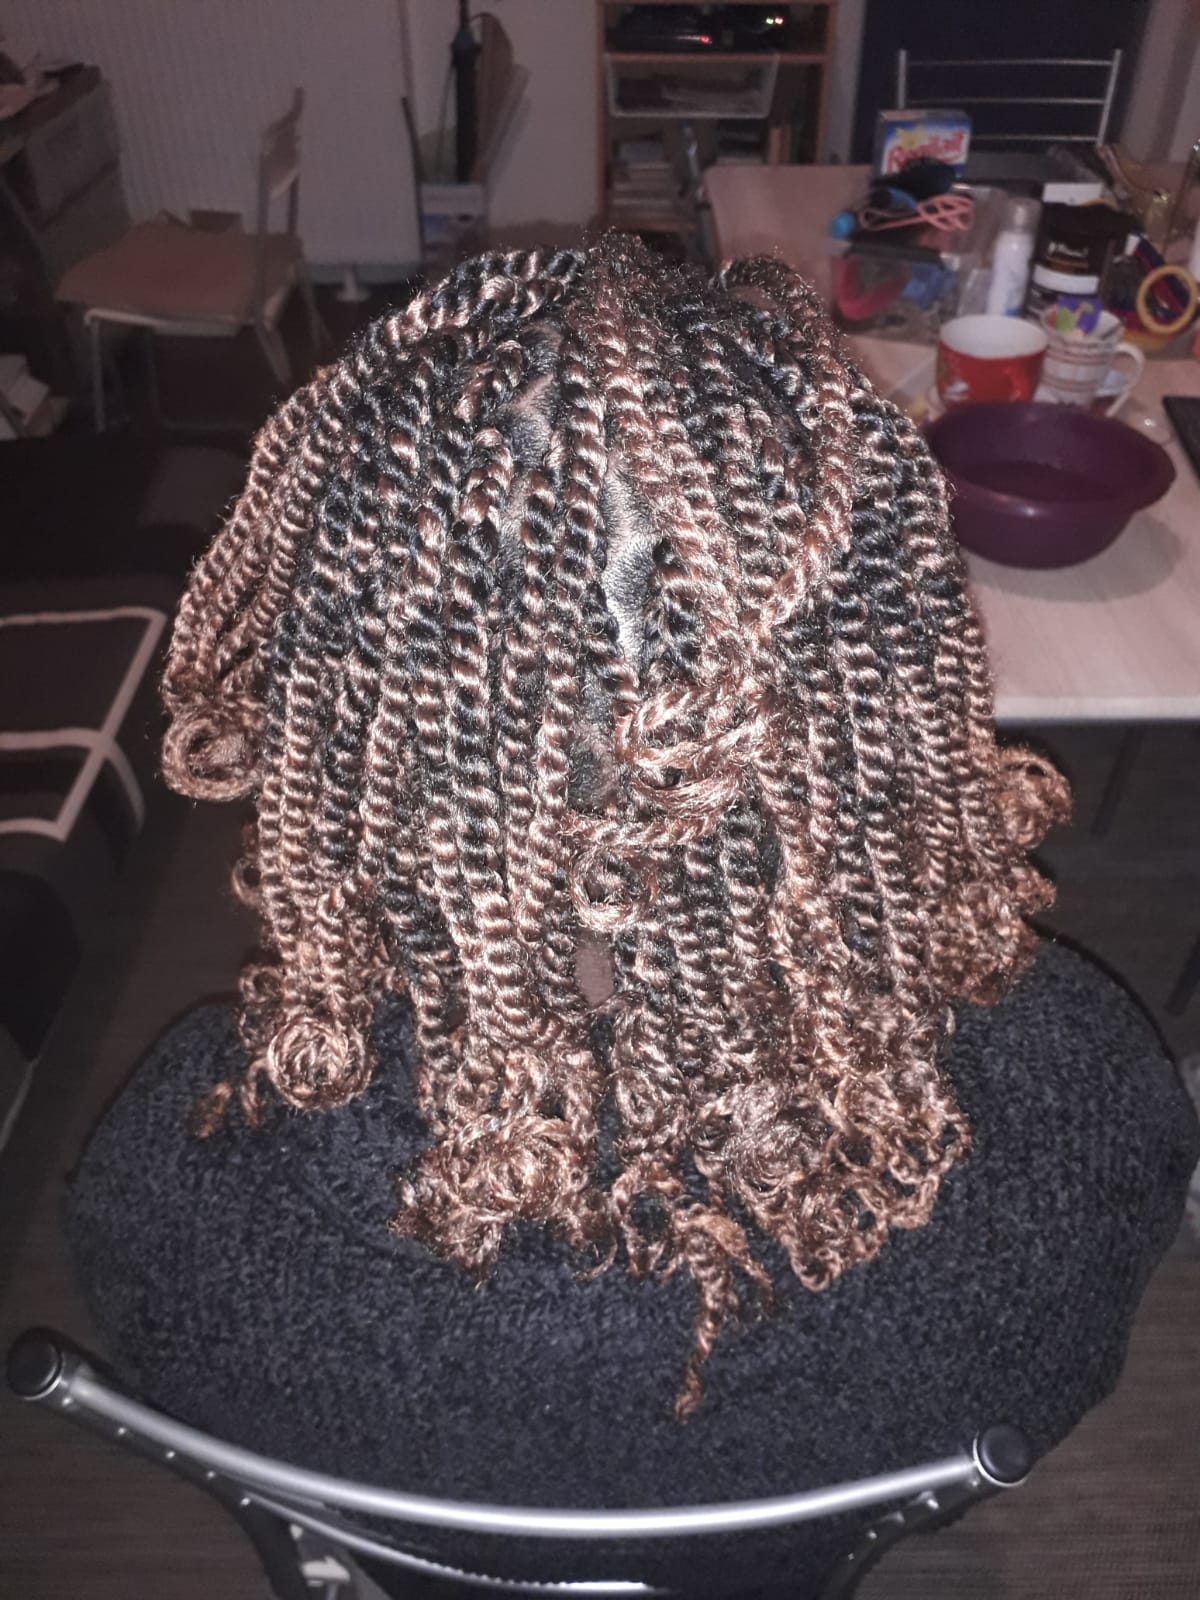 salon de coiffure afro tresse tresses box braids crochet braids vanilles tissages paris 75 77 78 91 92 93 94 95 RFDPPUMH